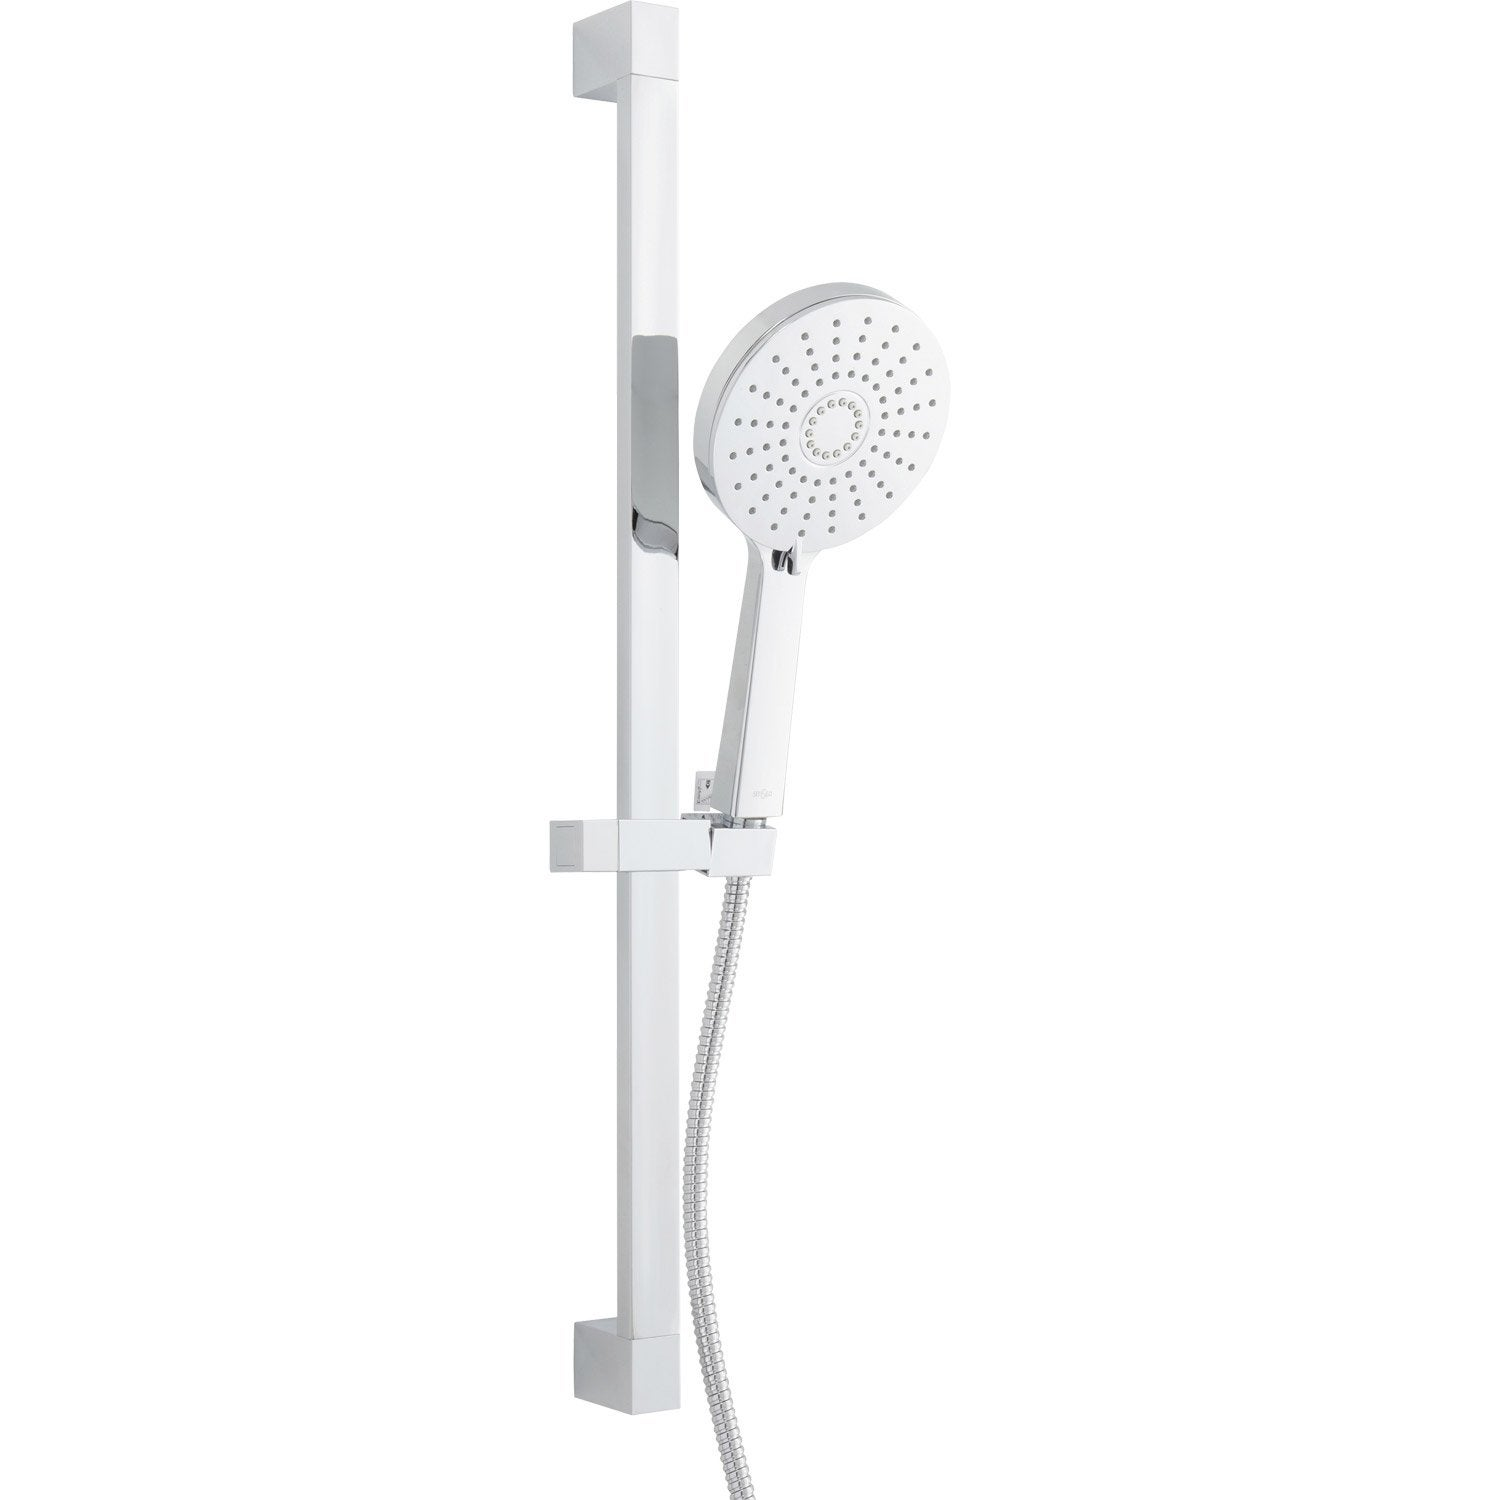 Ensemble de douche 3 jets sensea city chrom leroy merlin - Ensemble de douche leroy merlin ...